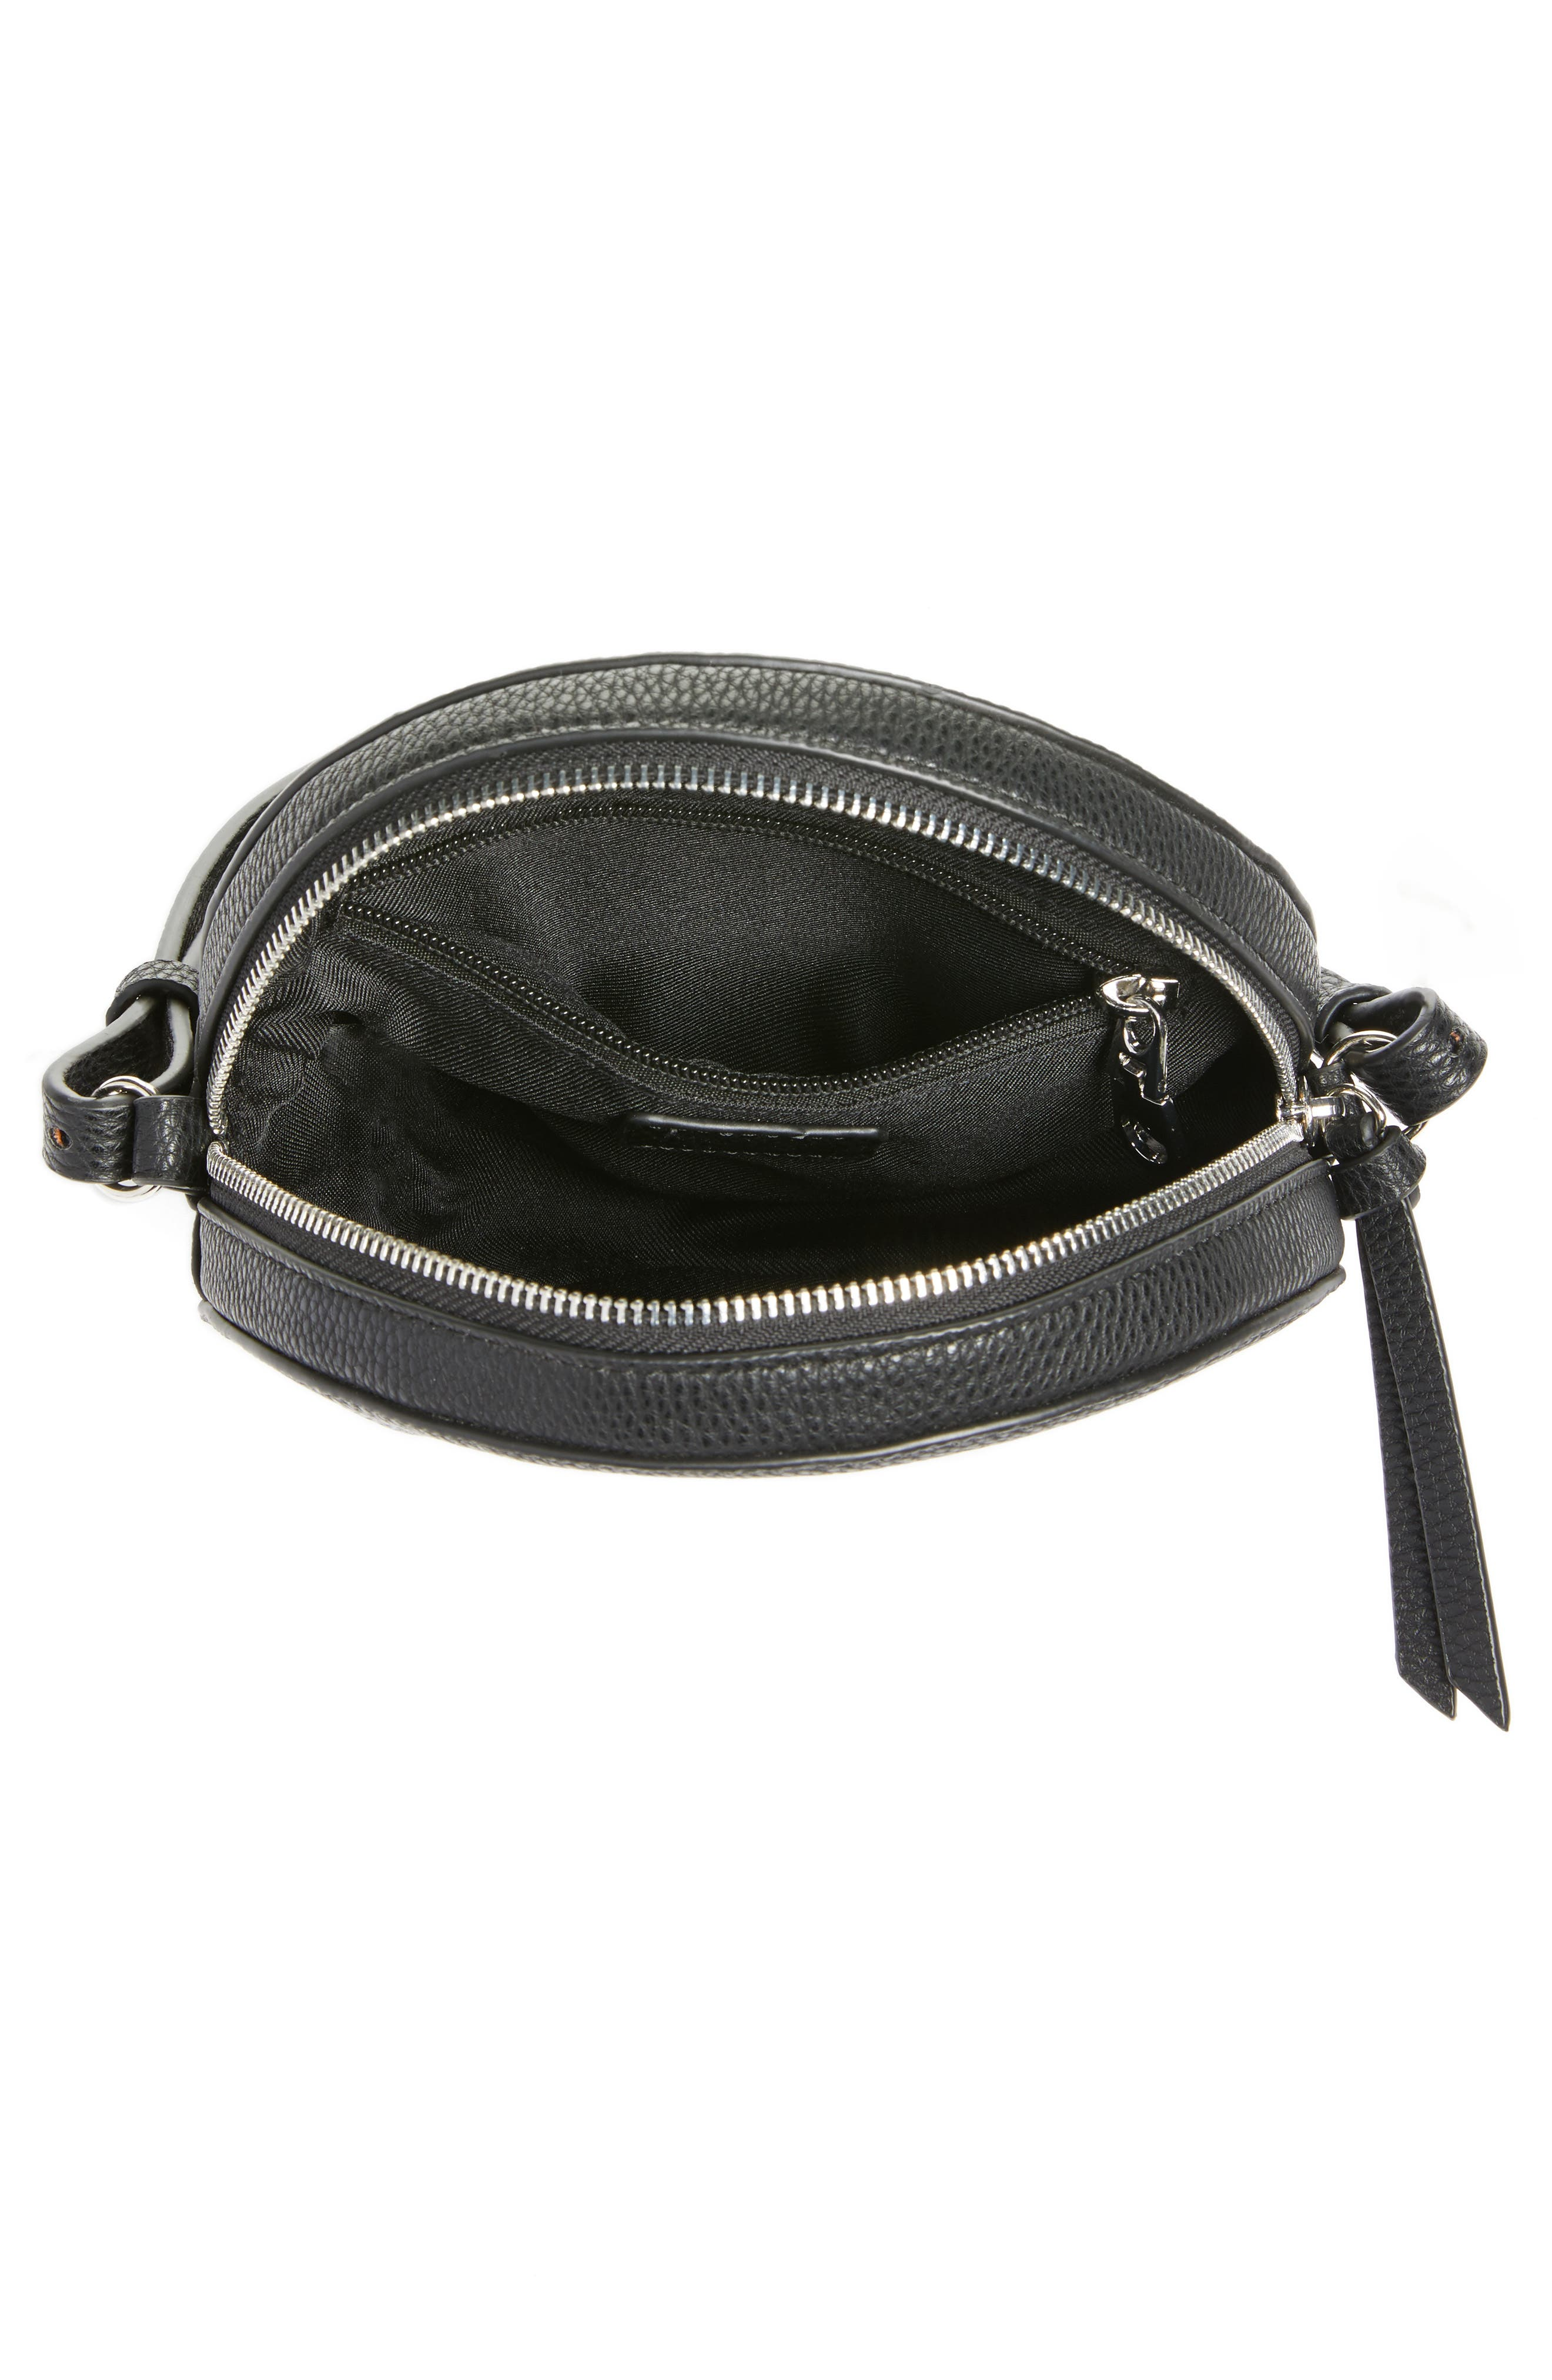 Cassie Faux Leather Crossbody Bag,                             Alternate thumbnail 4, color,                             001